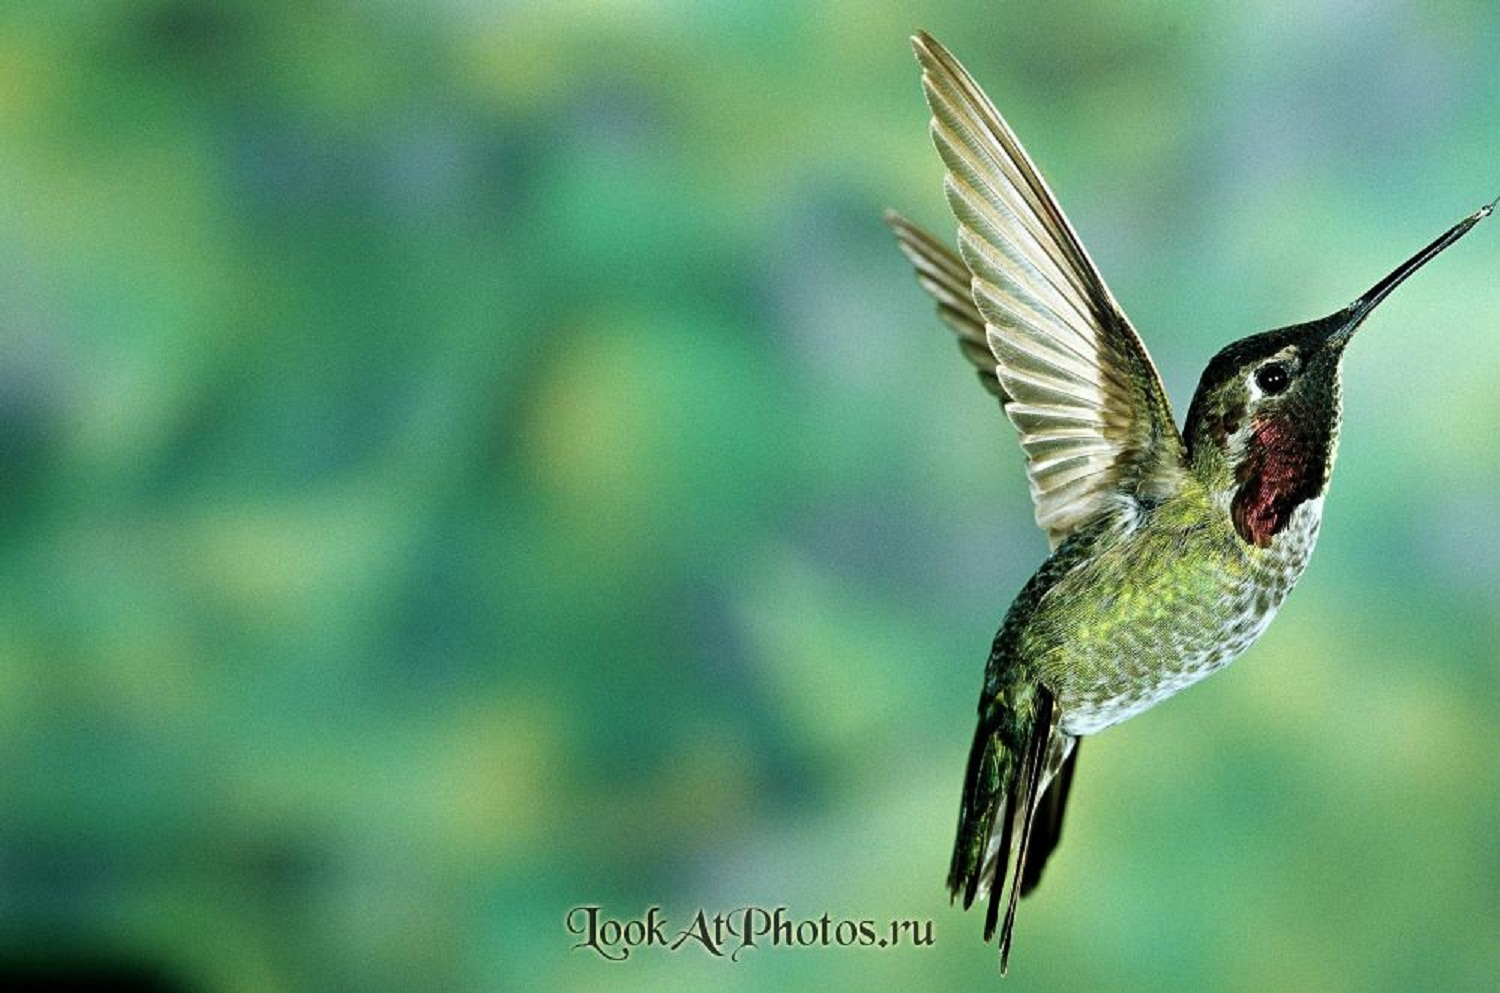 17834 download wallpaper Animals, Birds, Humming-Birds screensavers and pictures for free